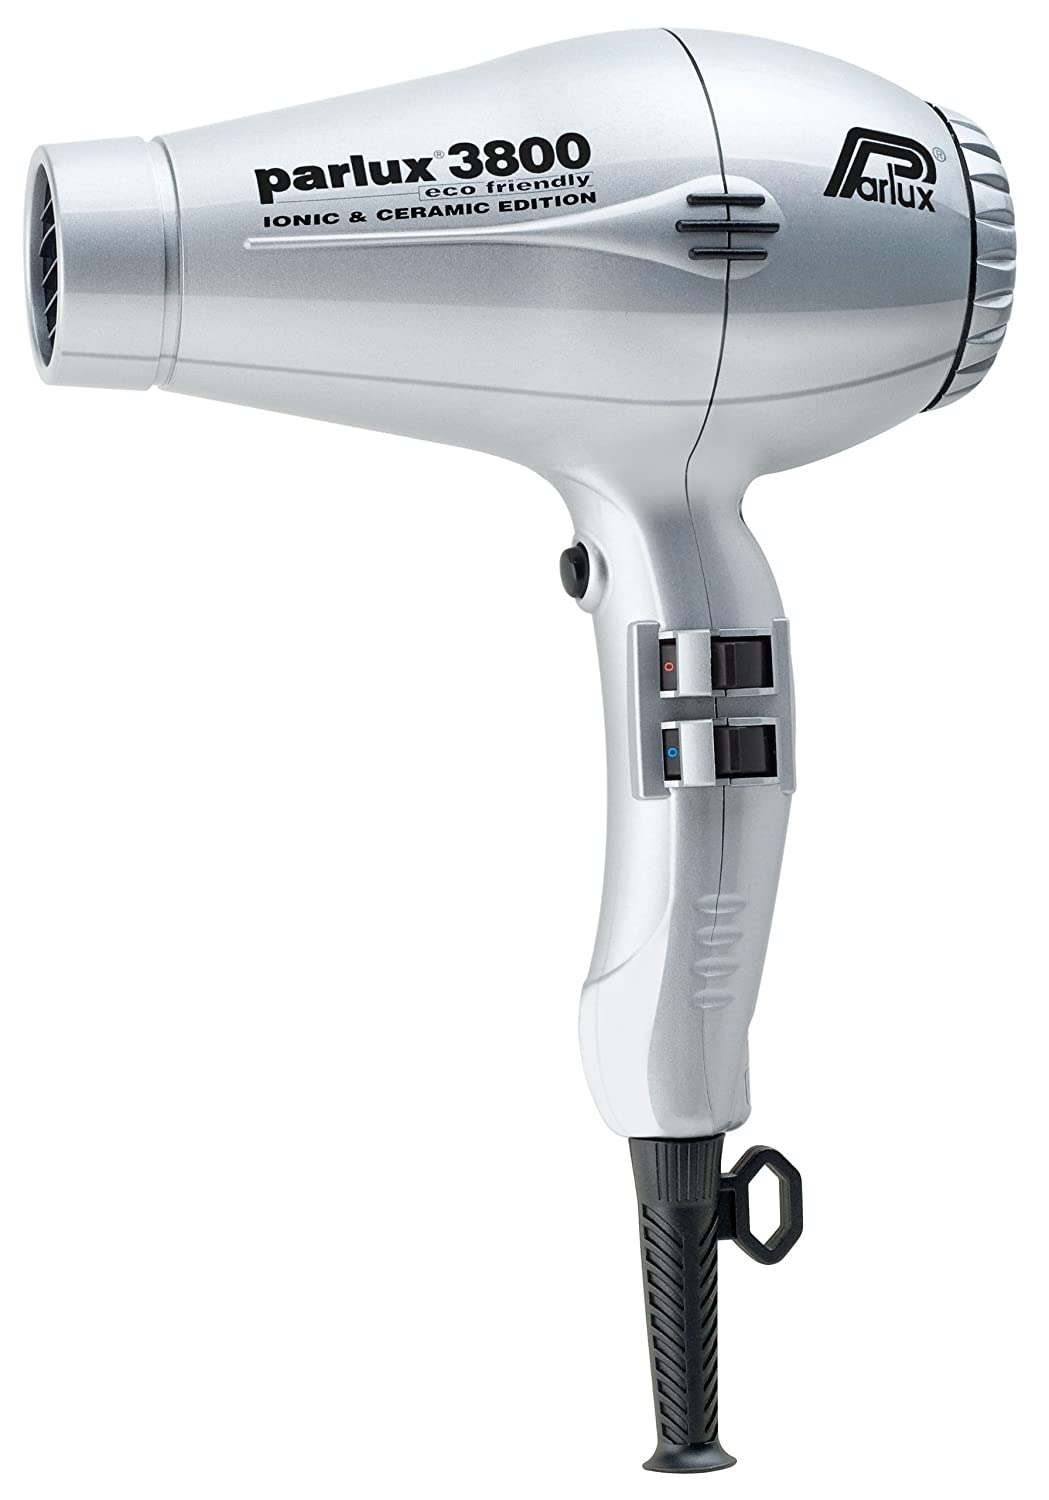 Parlux Parlux Eco Friendly 3800 Dryer, Silver